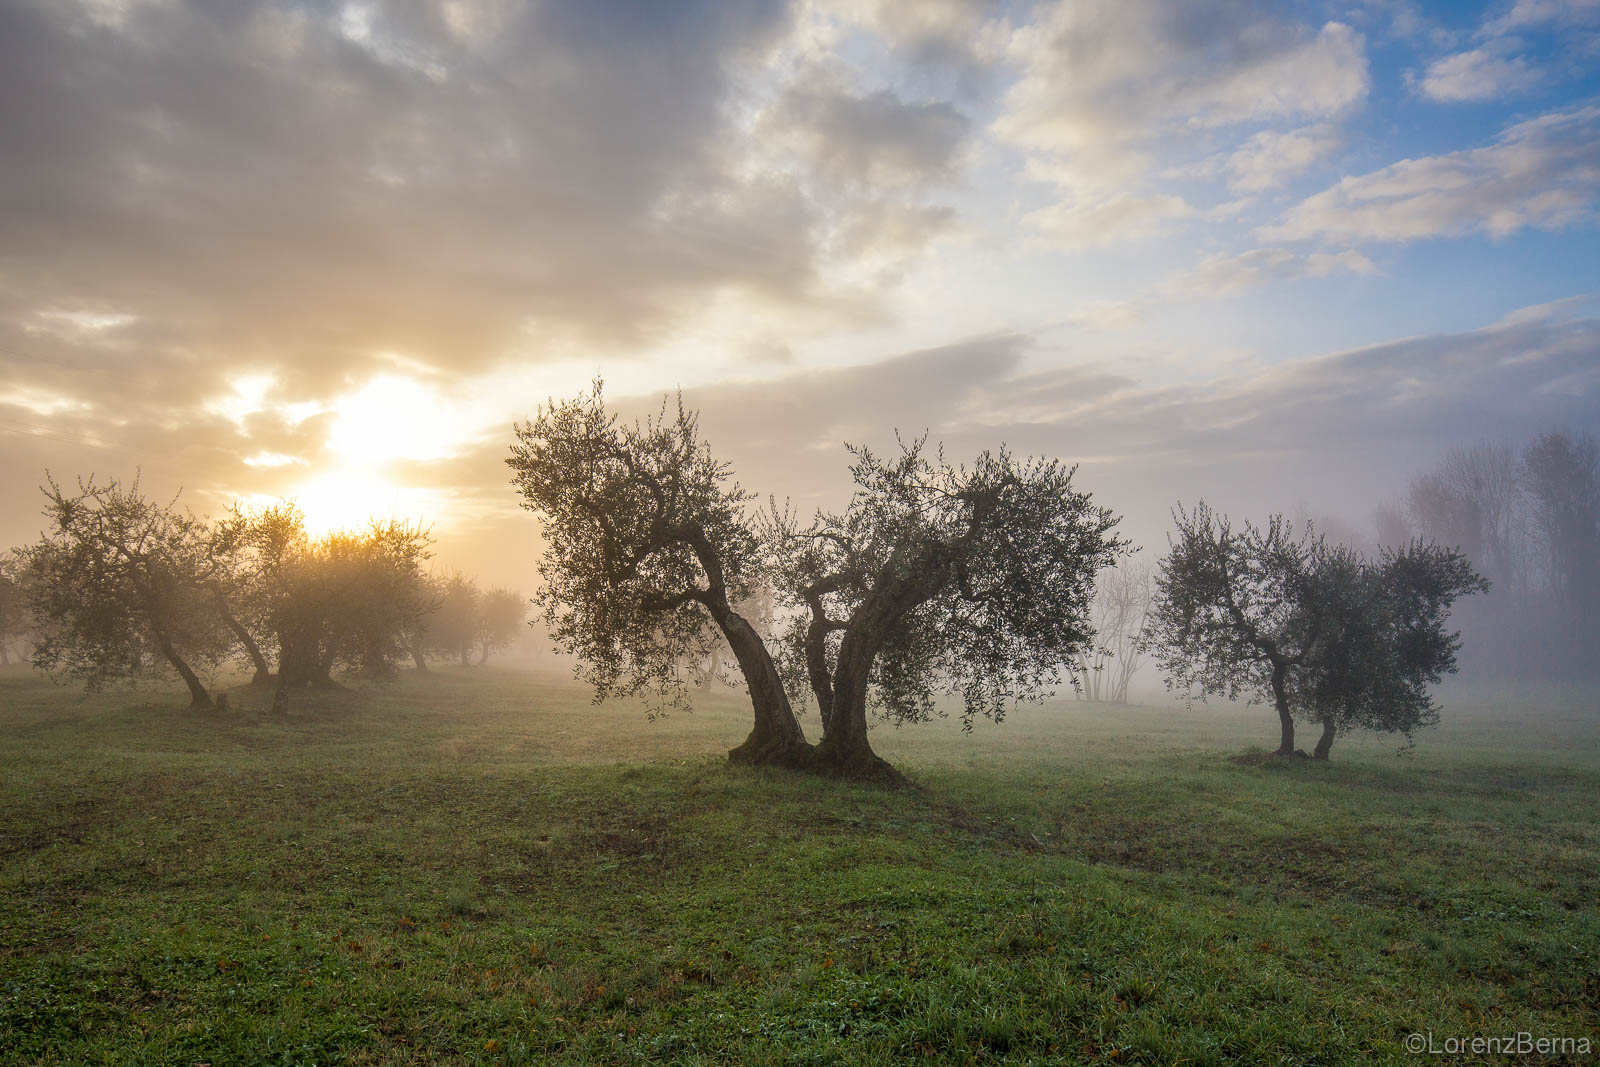 Olive trees in the mist, Chianti, Tuscany, Italy.